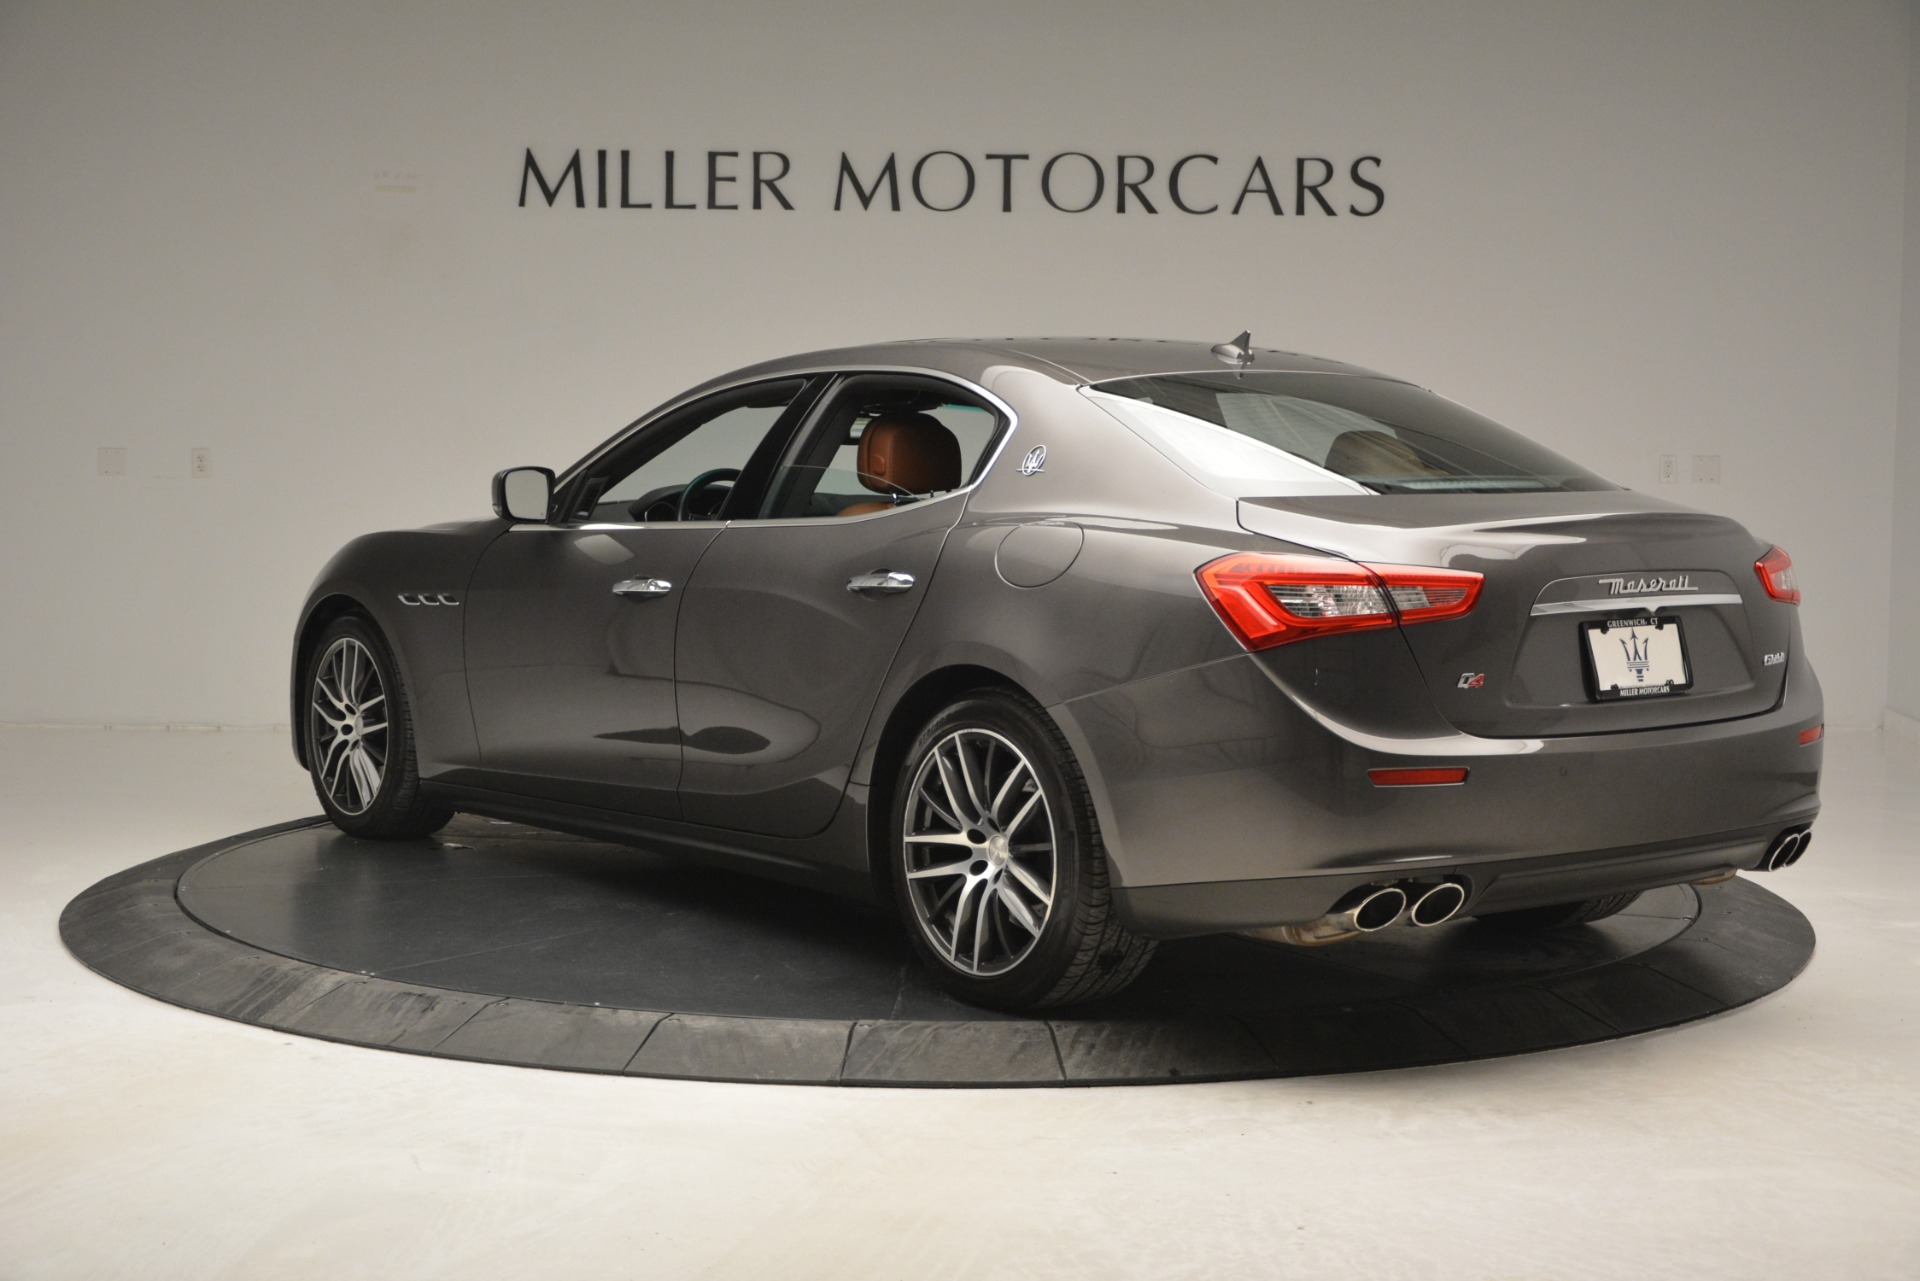 Used 2015 Maserati Ghibli S Q4 For Sale In Greenwich, CT. Alfa Romeo of Greenwich, 7483 2941_p5